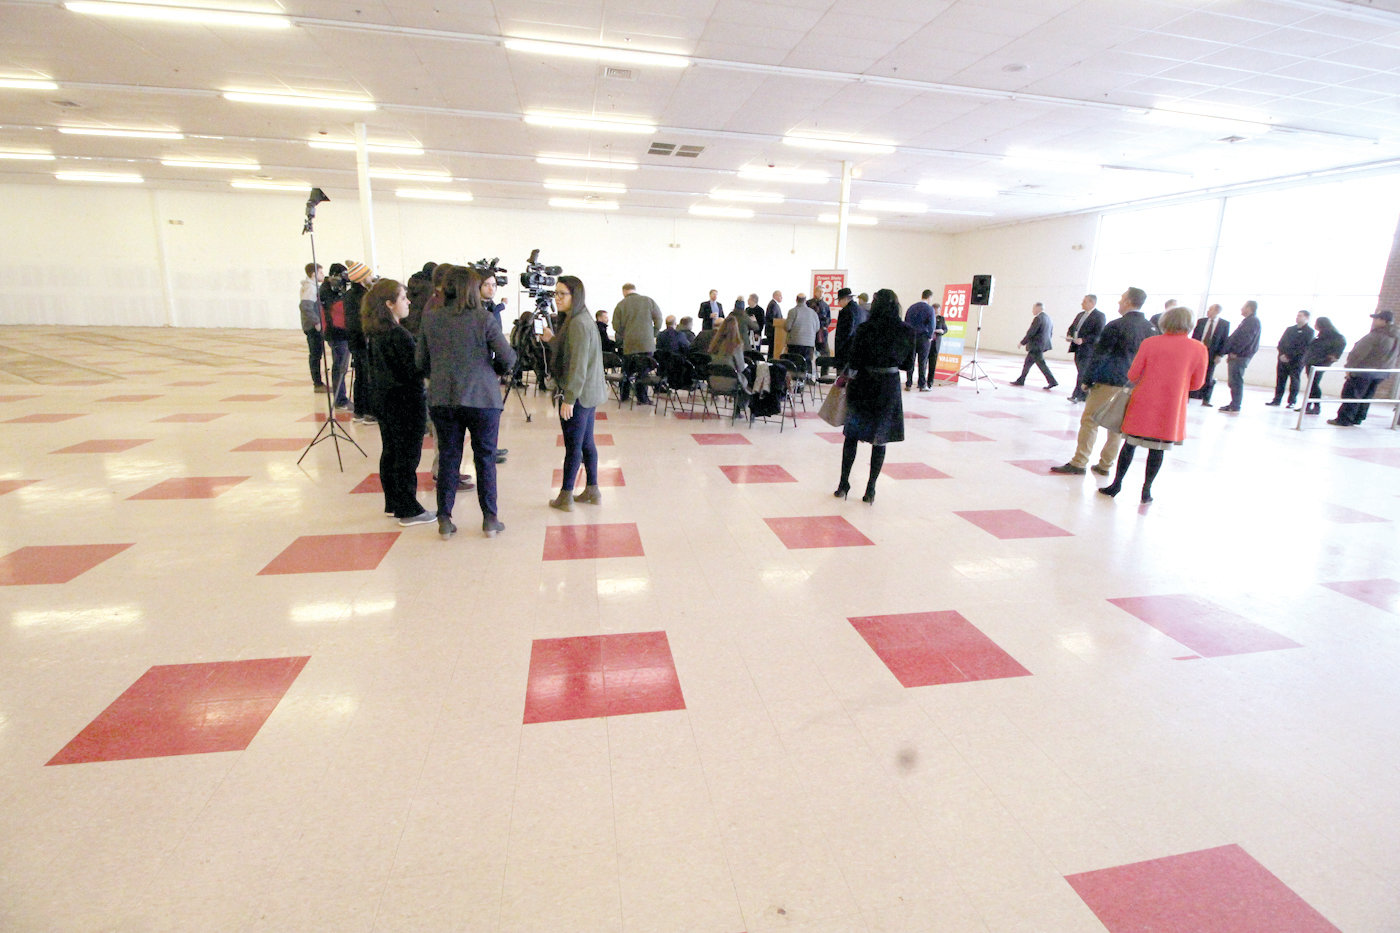 LOTS OF SPACE: The cavernous former Benny's store on Atwood Avenue in Cranston was the site for Wednesday's announcement that three of the former Rhode Island Benny's stores will become Ocean State Job Lot stores.